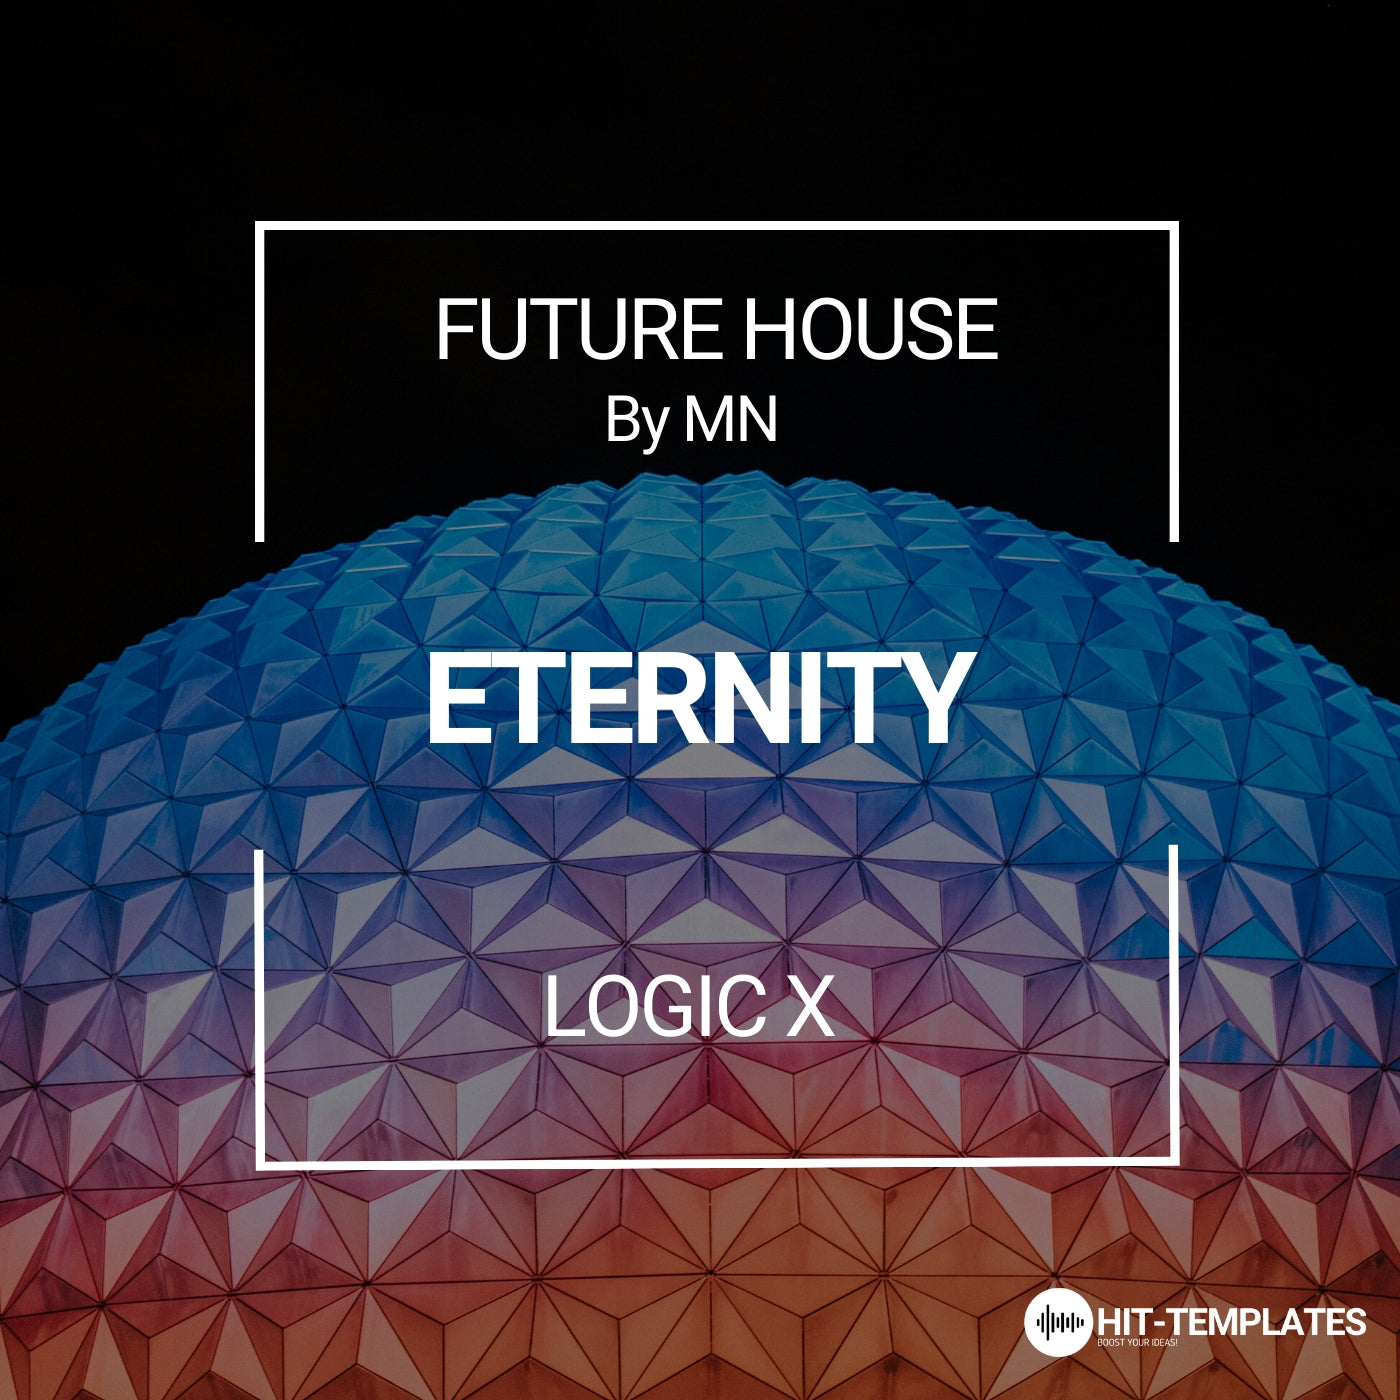 ETERNITY - FUTURE HOUSE